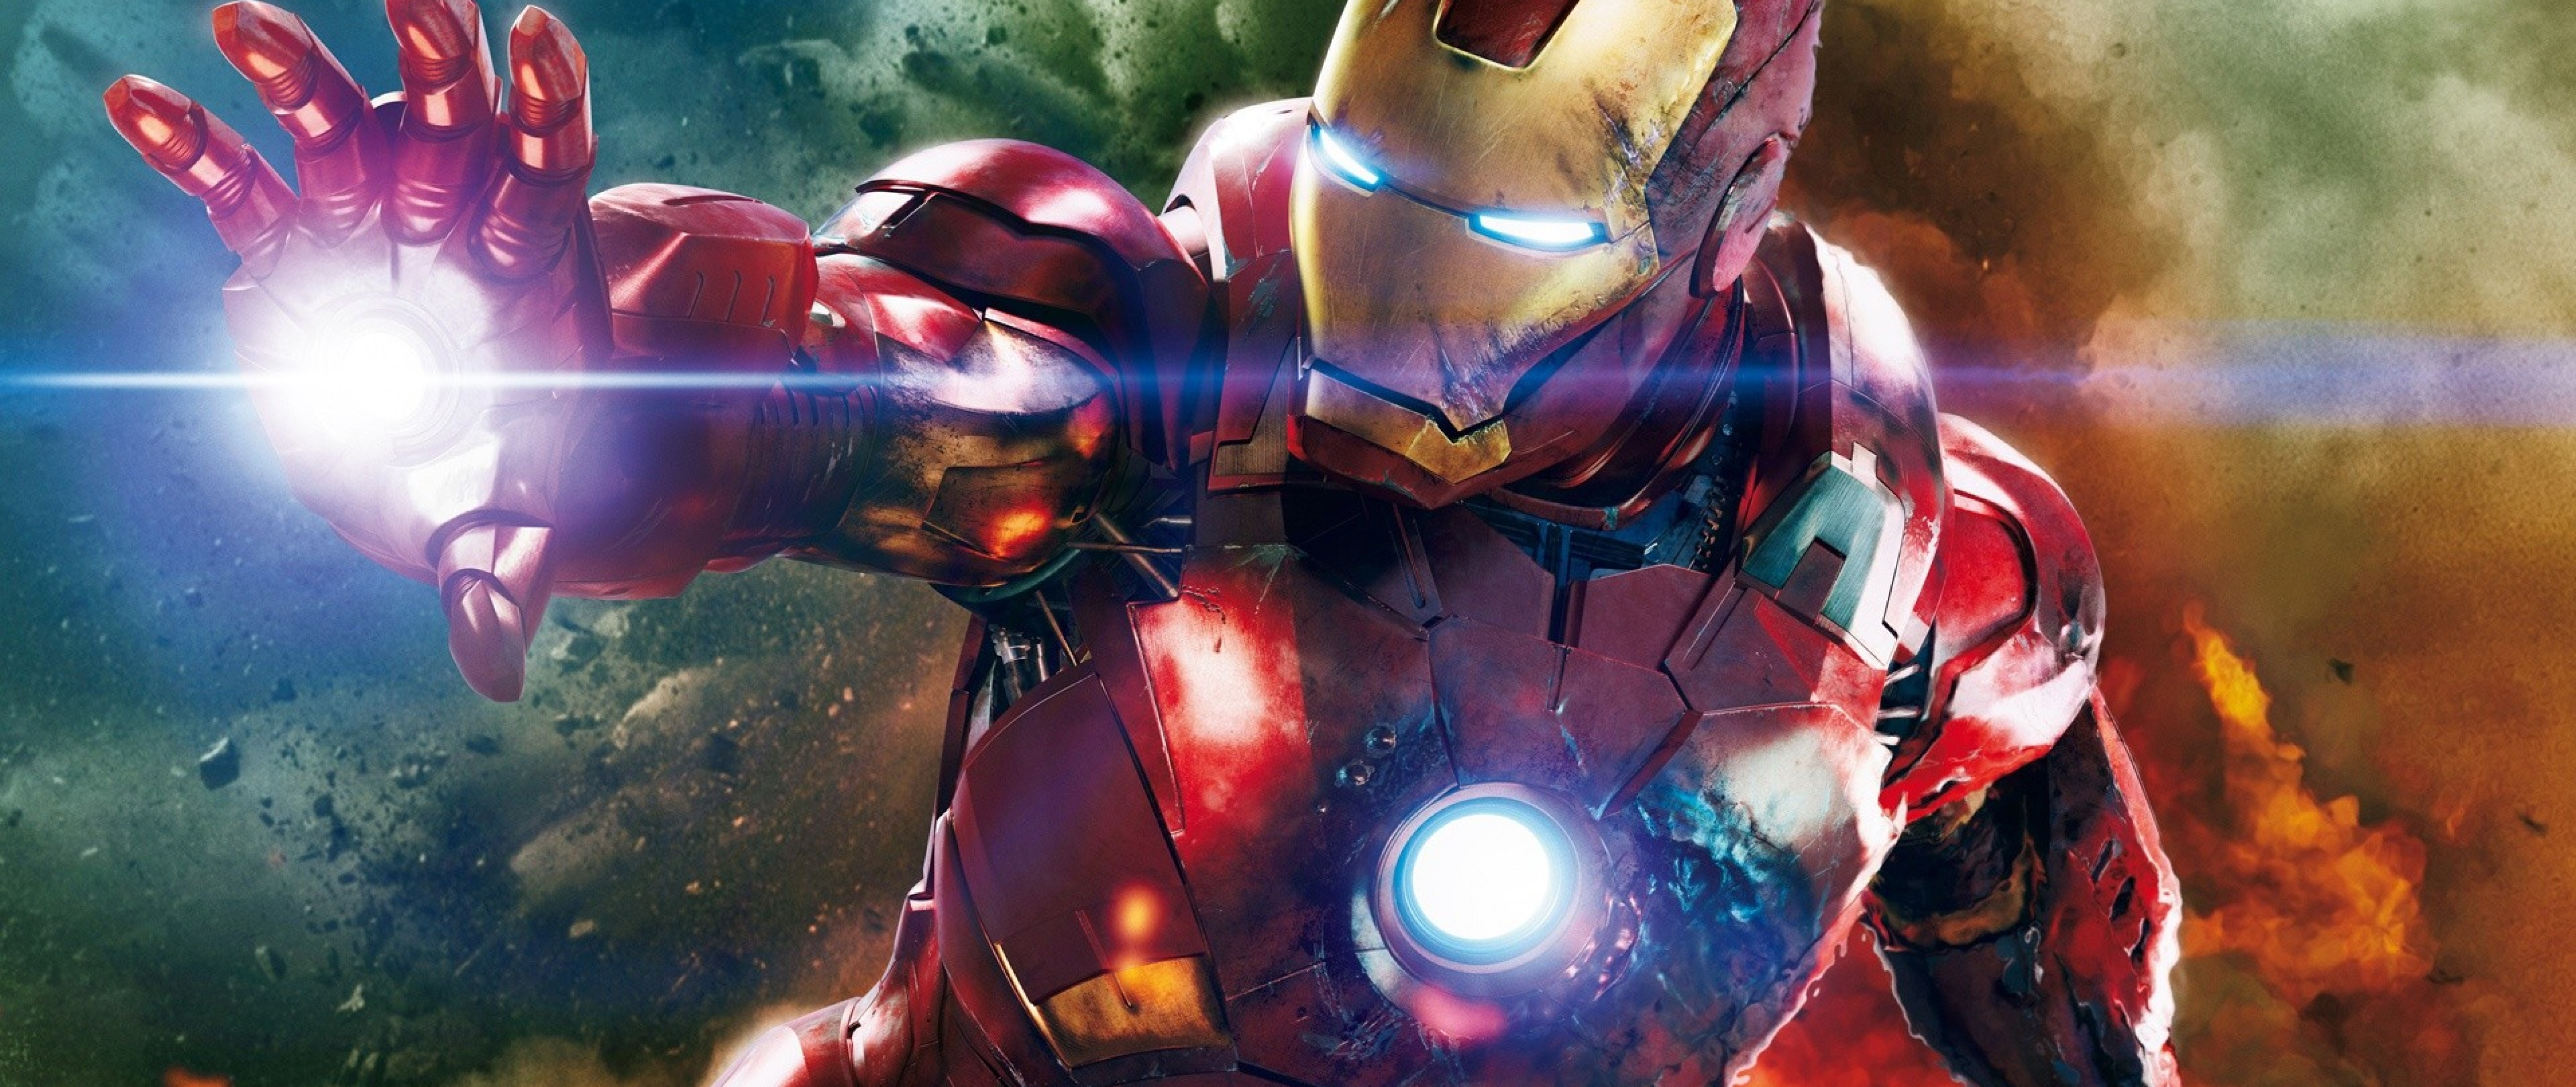 Free Download Iron Man Movie Wallpaper For Desktop And